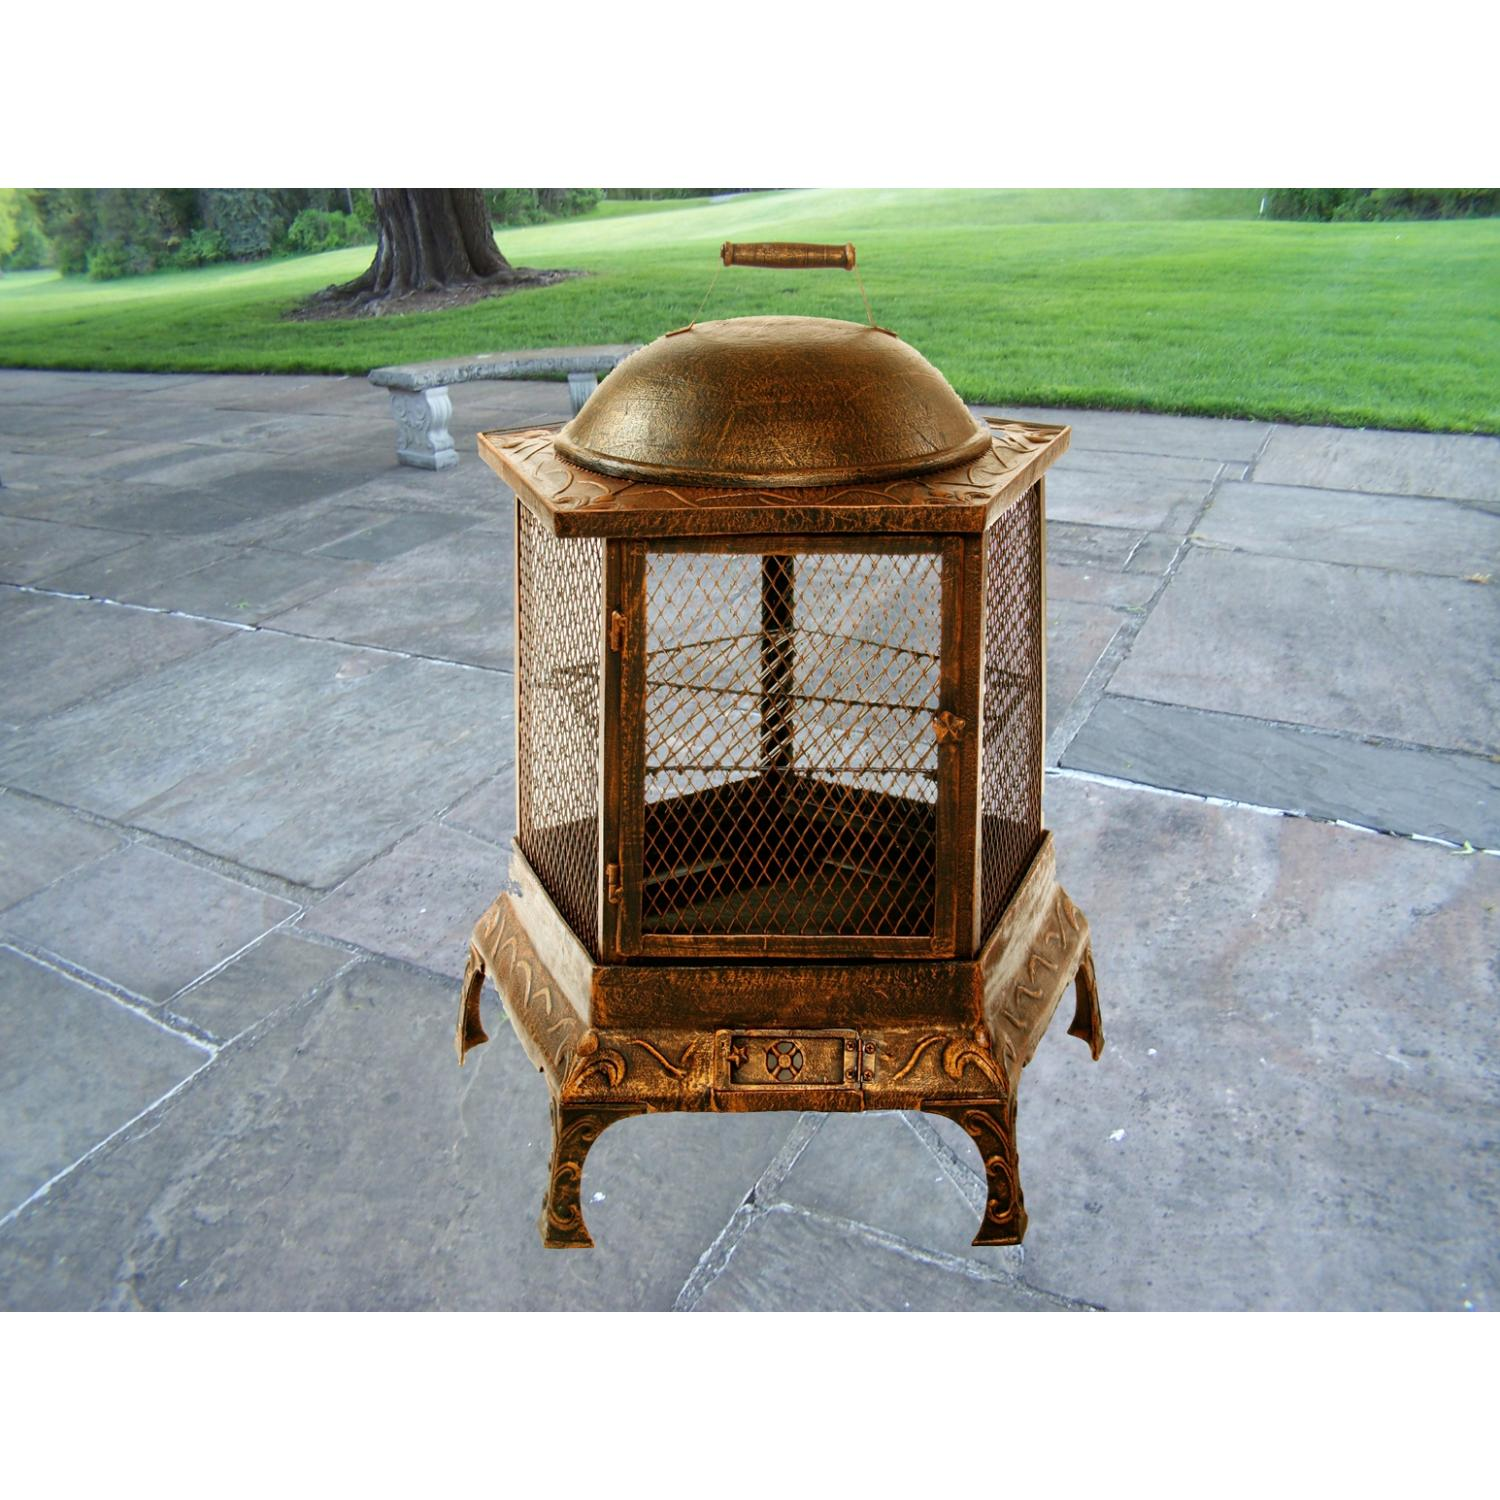 Oakland Living Pentagon Fire Pit Chimenea - Antique Bronze